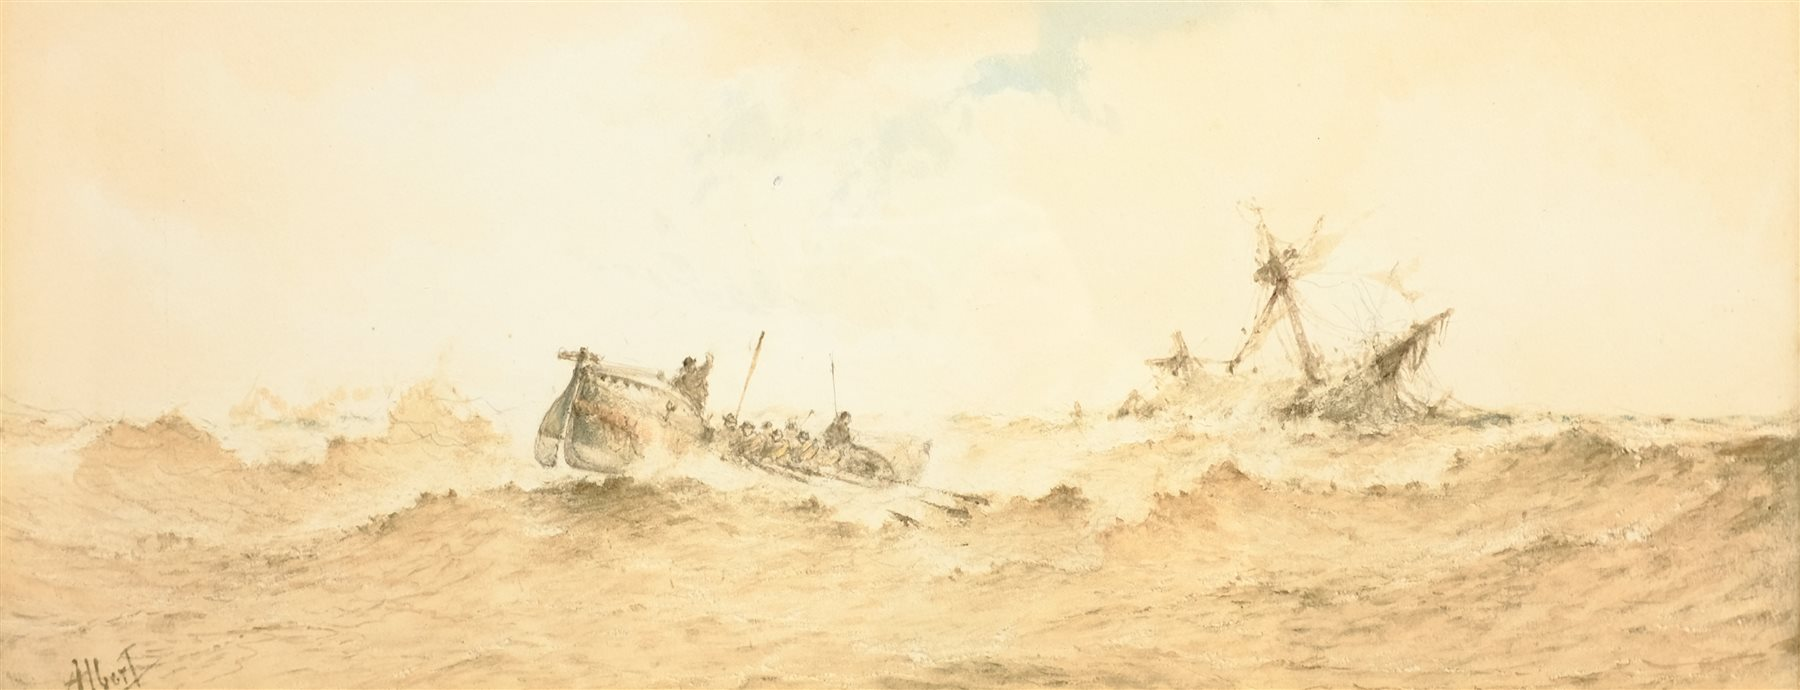 Albert Ernest Markes (British 1865-1901): 'The Rescue', watercolour signed, titled on the mount 20cm - Image 2 of 4